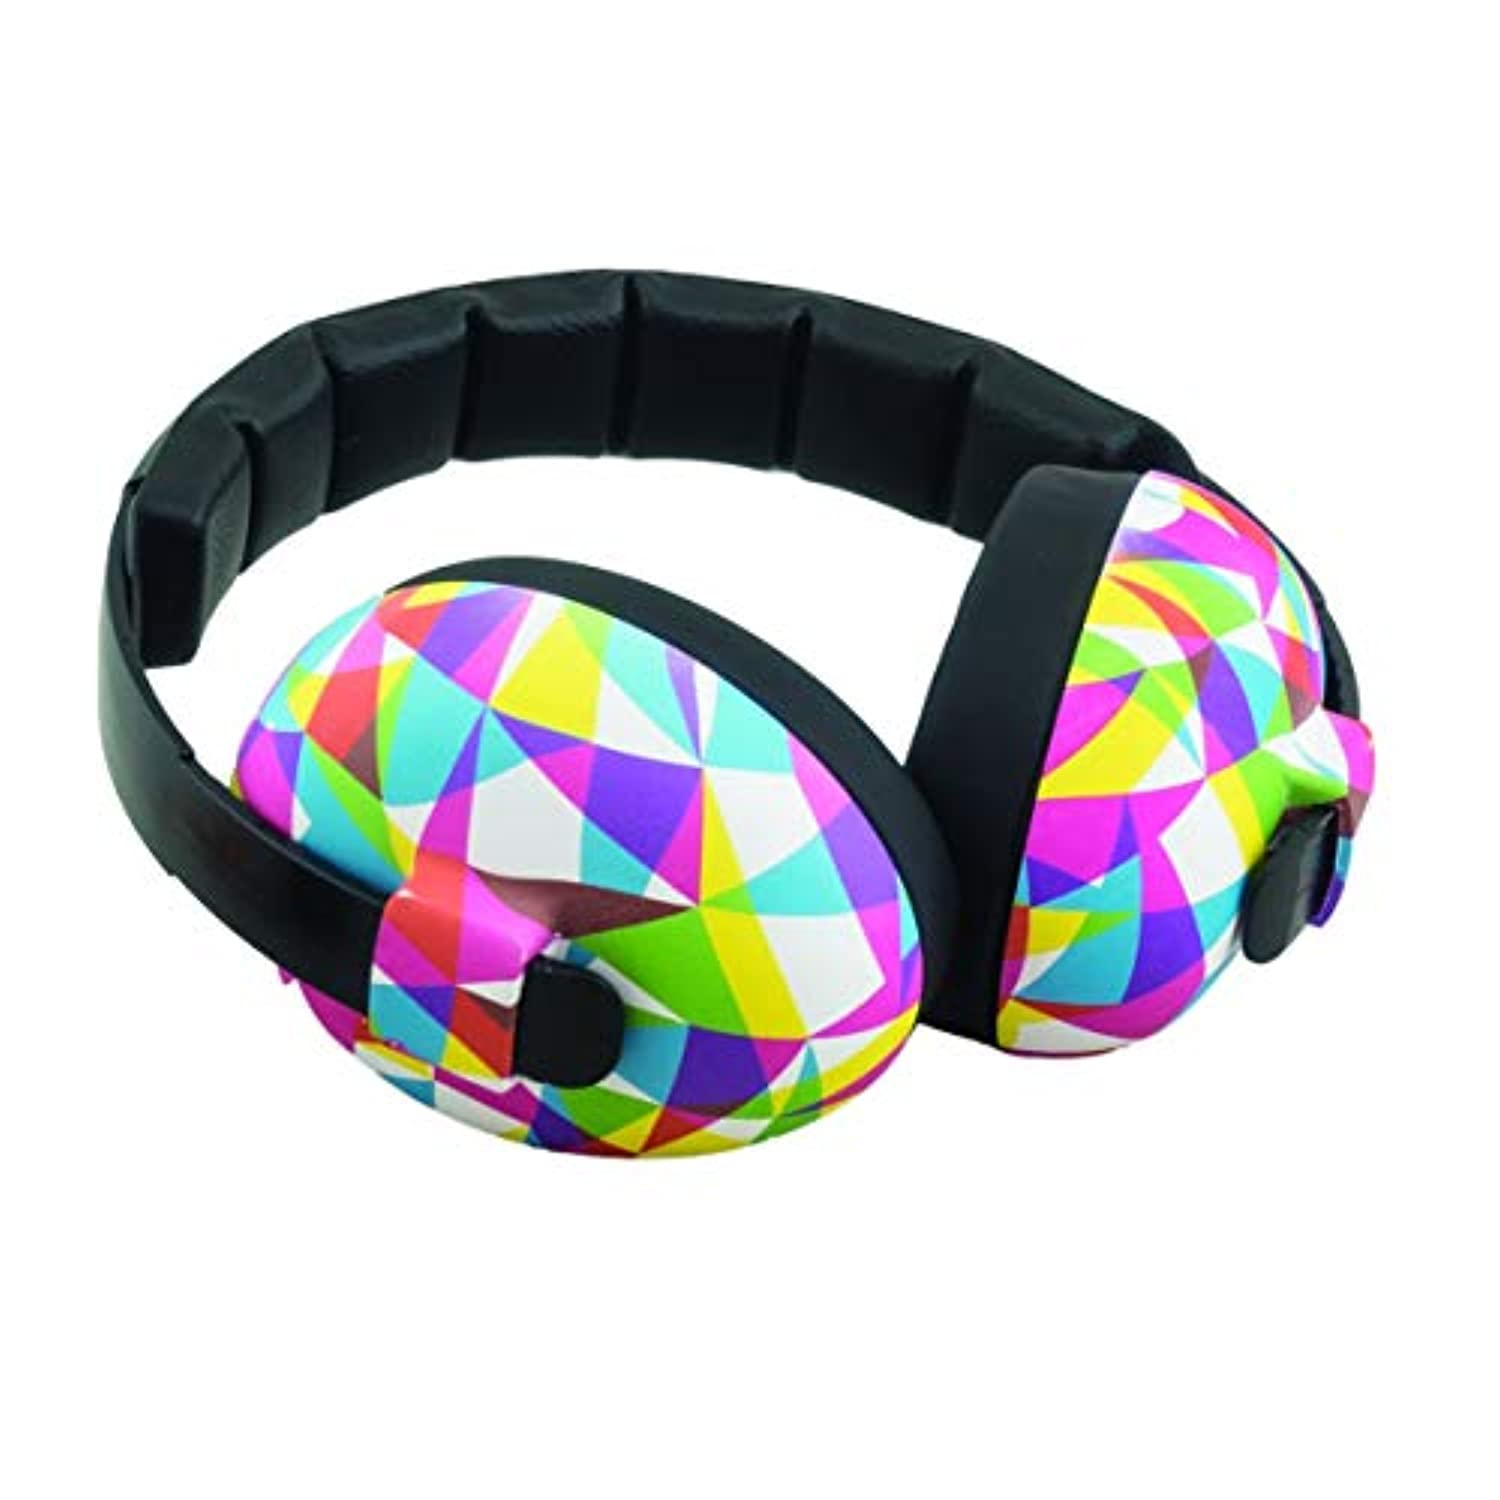 Baby Banz earBanZ Infant Hearing Protection, Geo Print, 3+ Months by Baby Banz [並行輸入品]